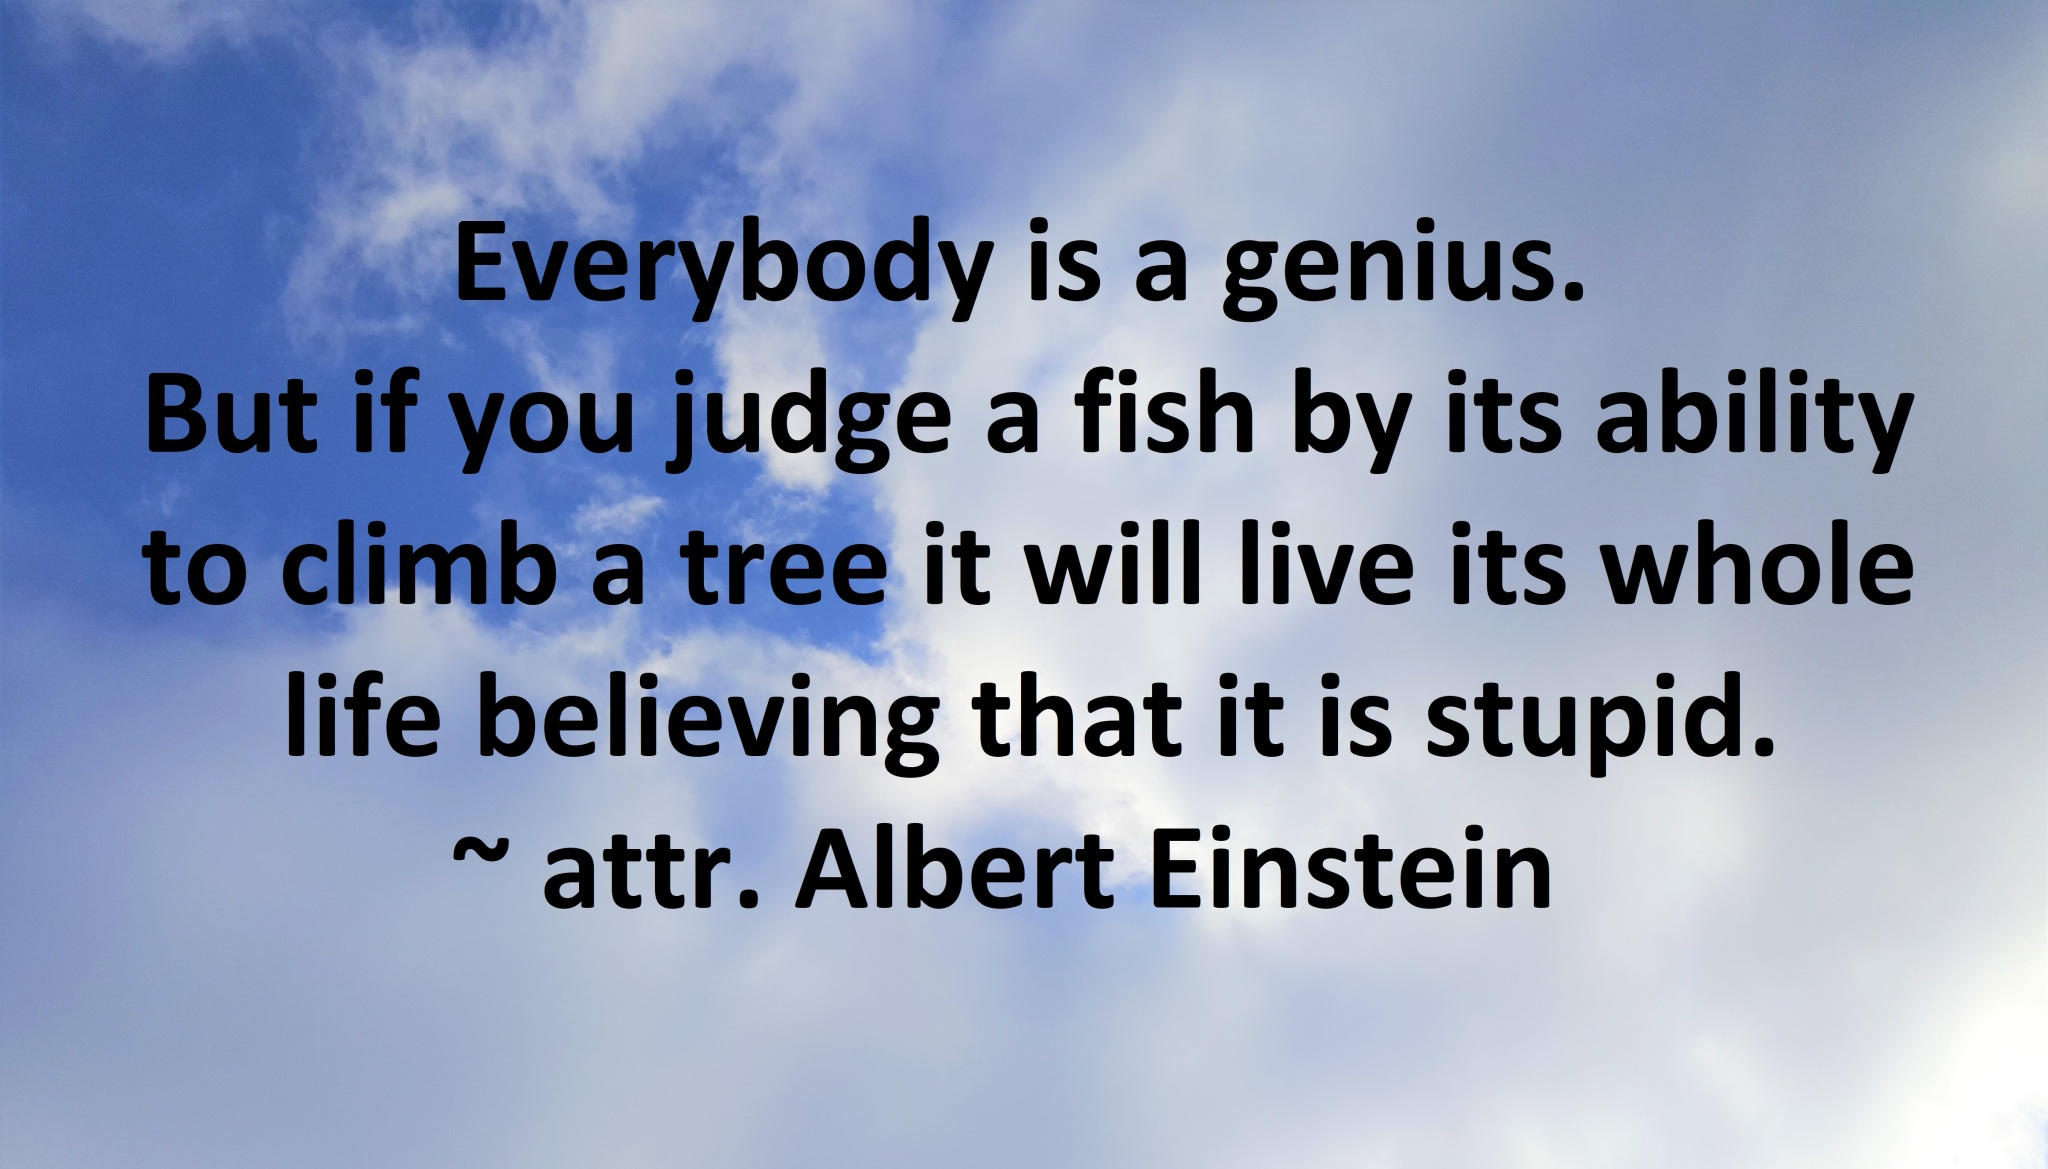 Albert Einstein - Everybody is a genius